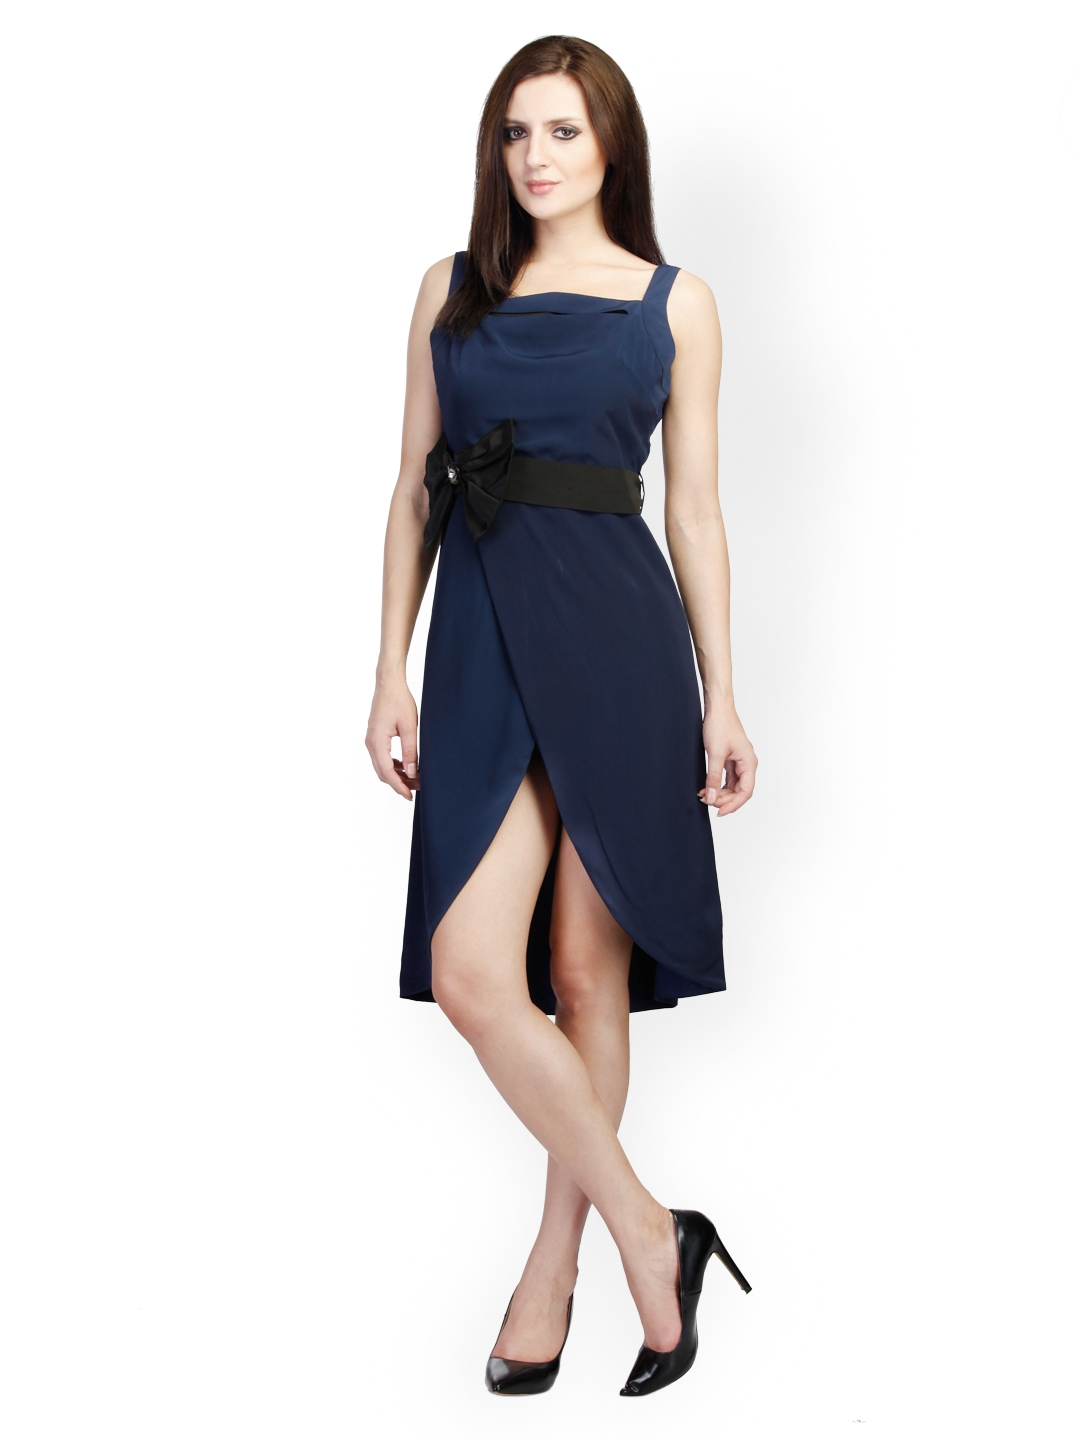 Elegant DRESSBERRY WOMEN BLACK DRESS WORTH RS 1699 ONLY FOR RS 1509